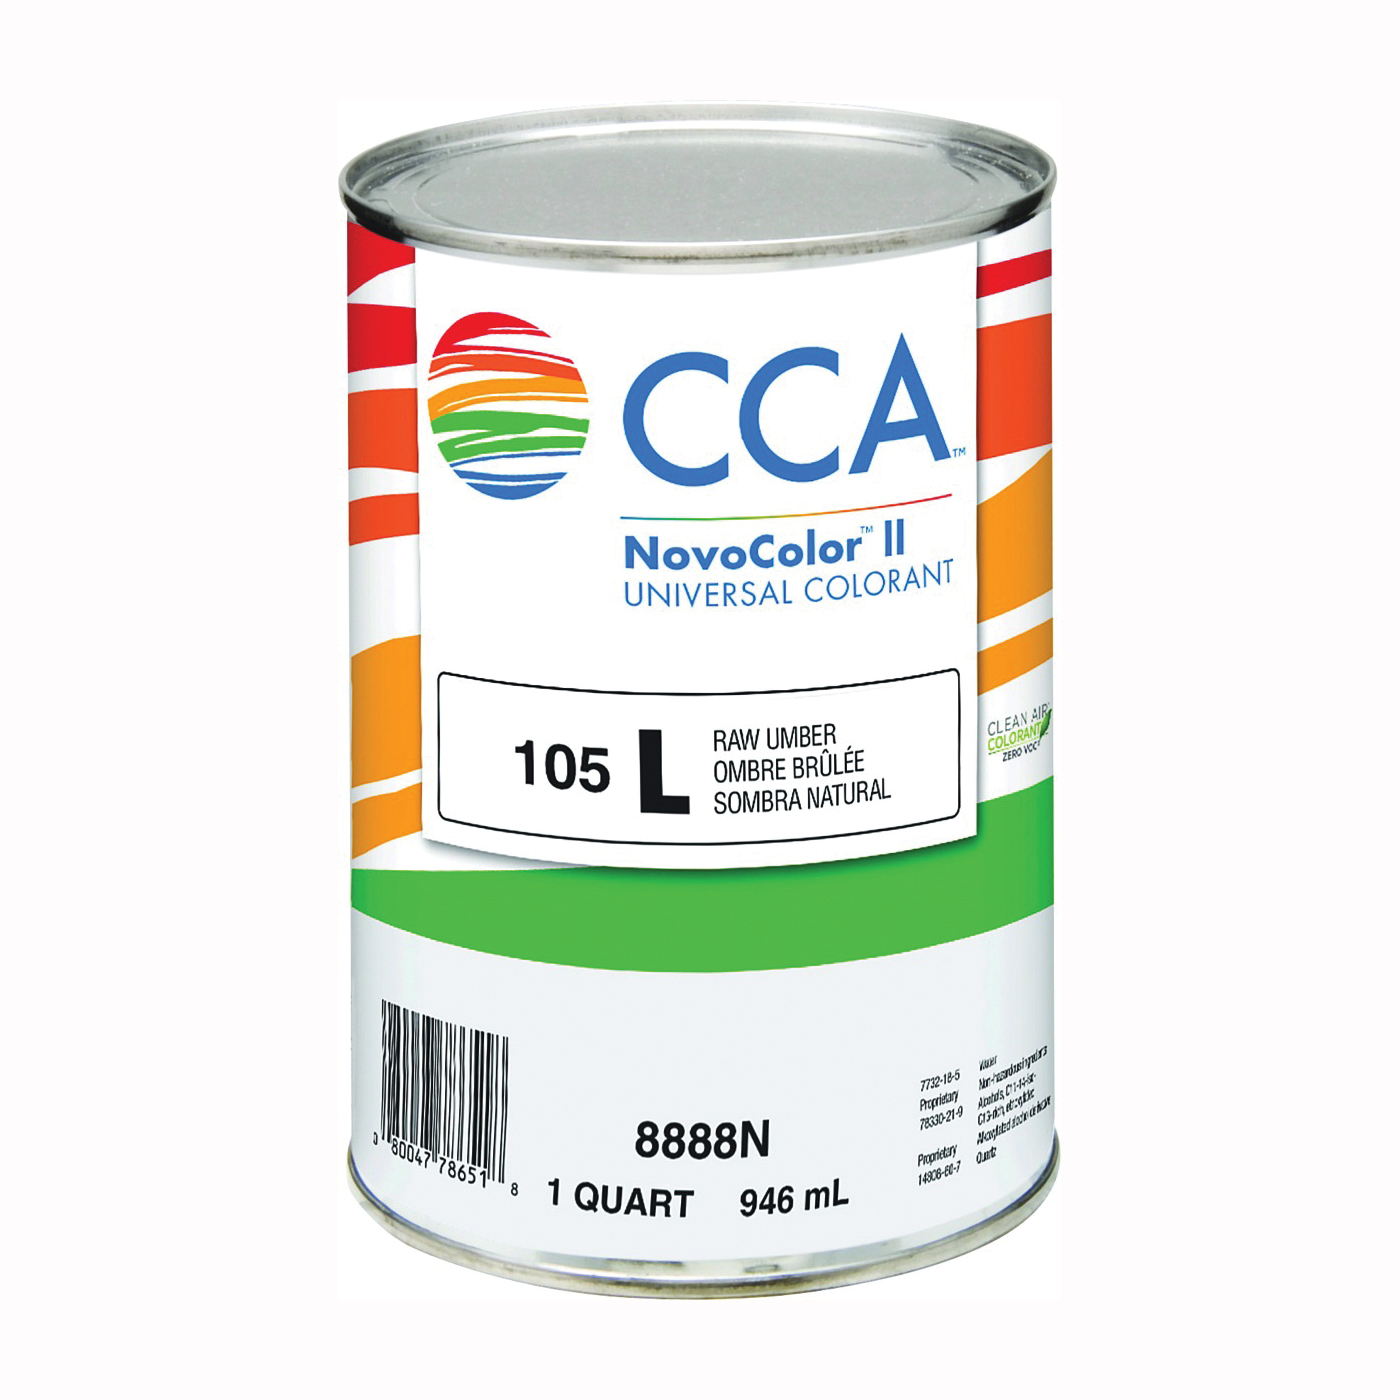 Picture of CCA NovoColor II 8888N Universal Colorant, Raw Umber, Liquid, 1 qt Package